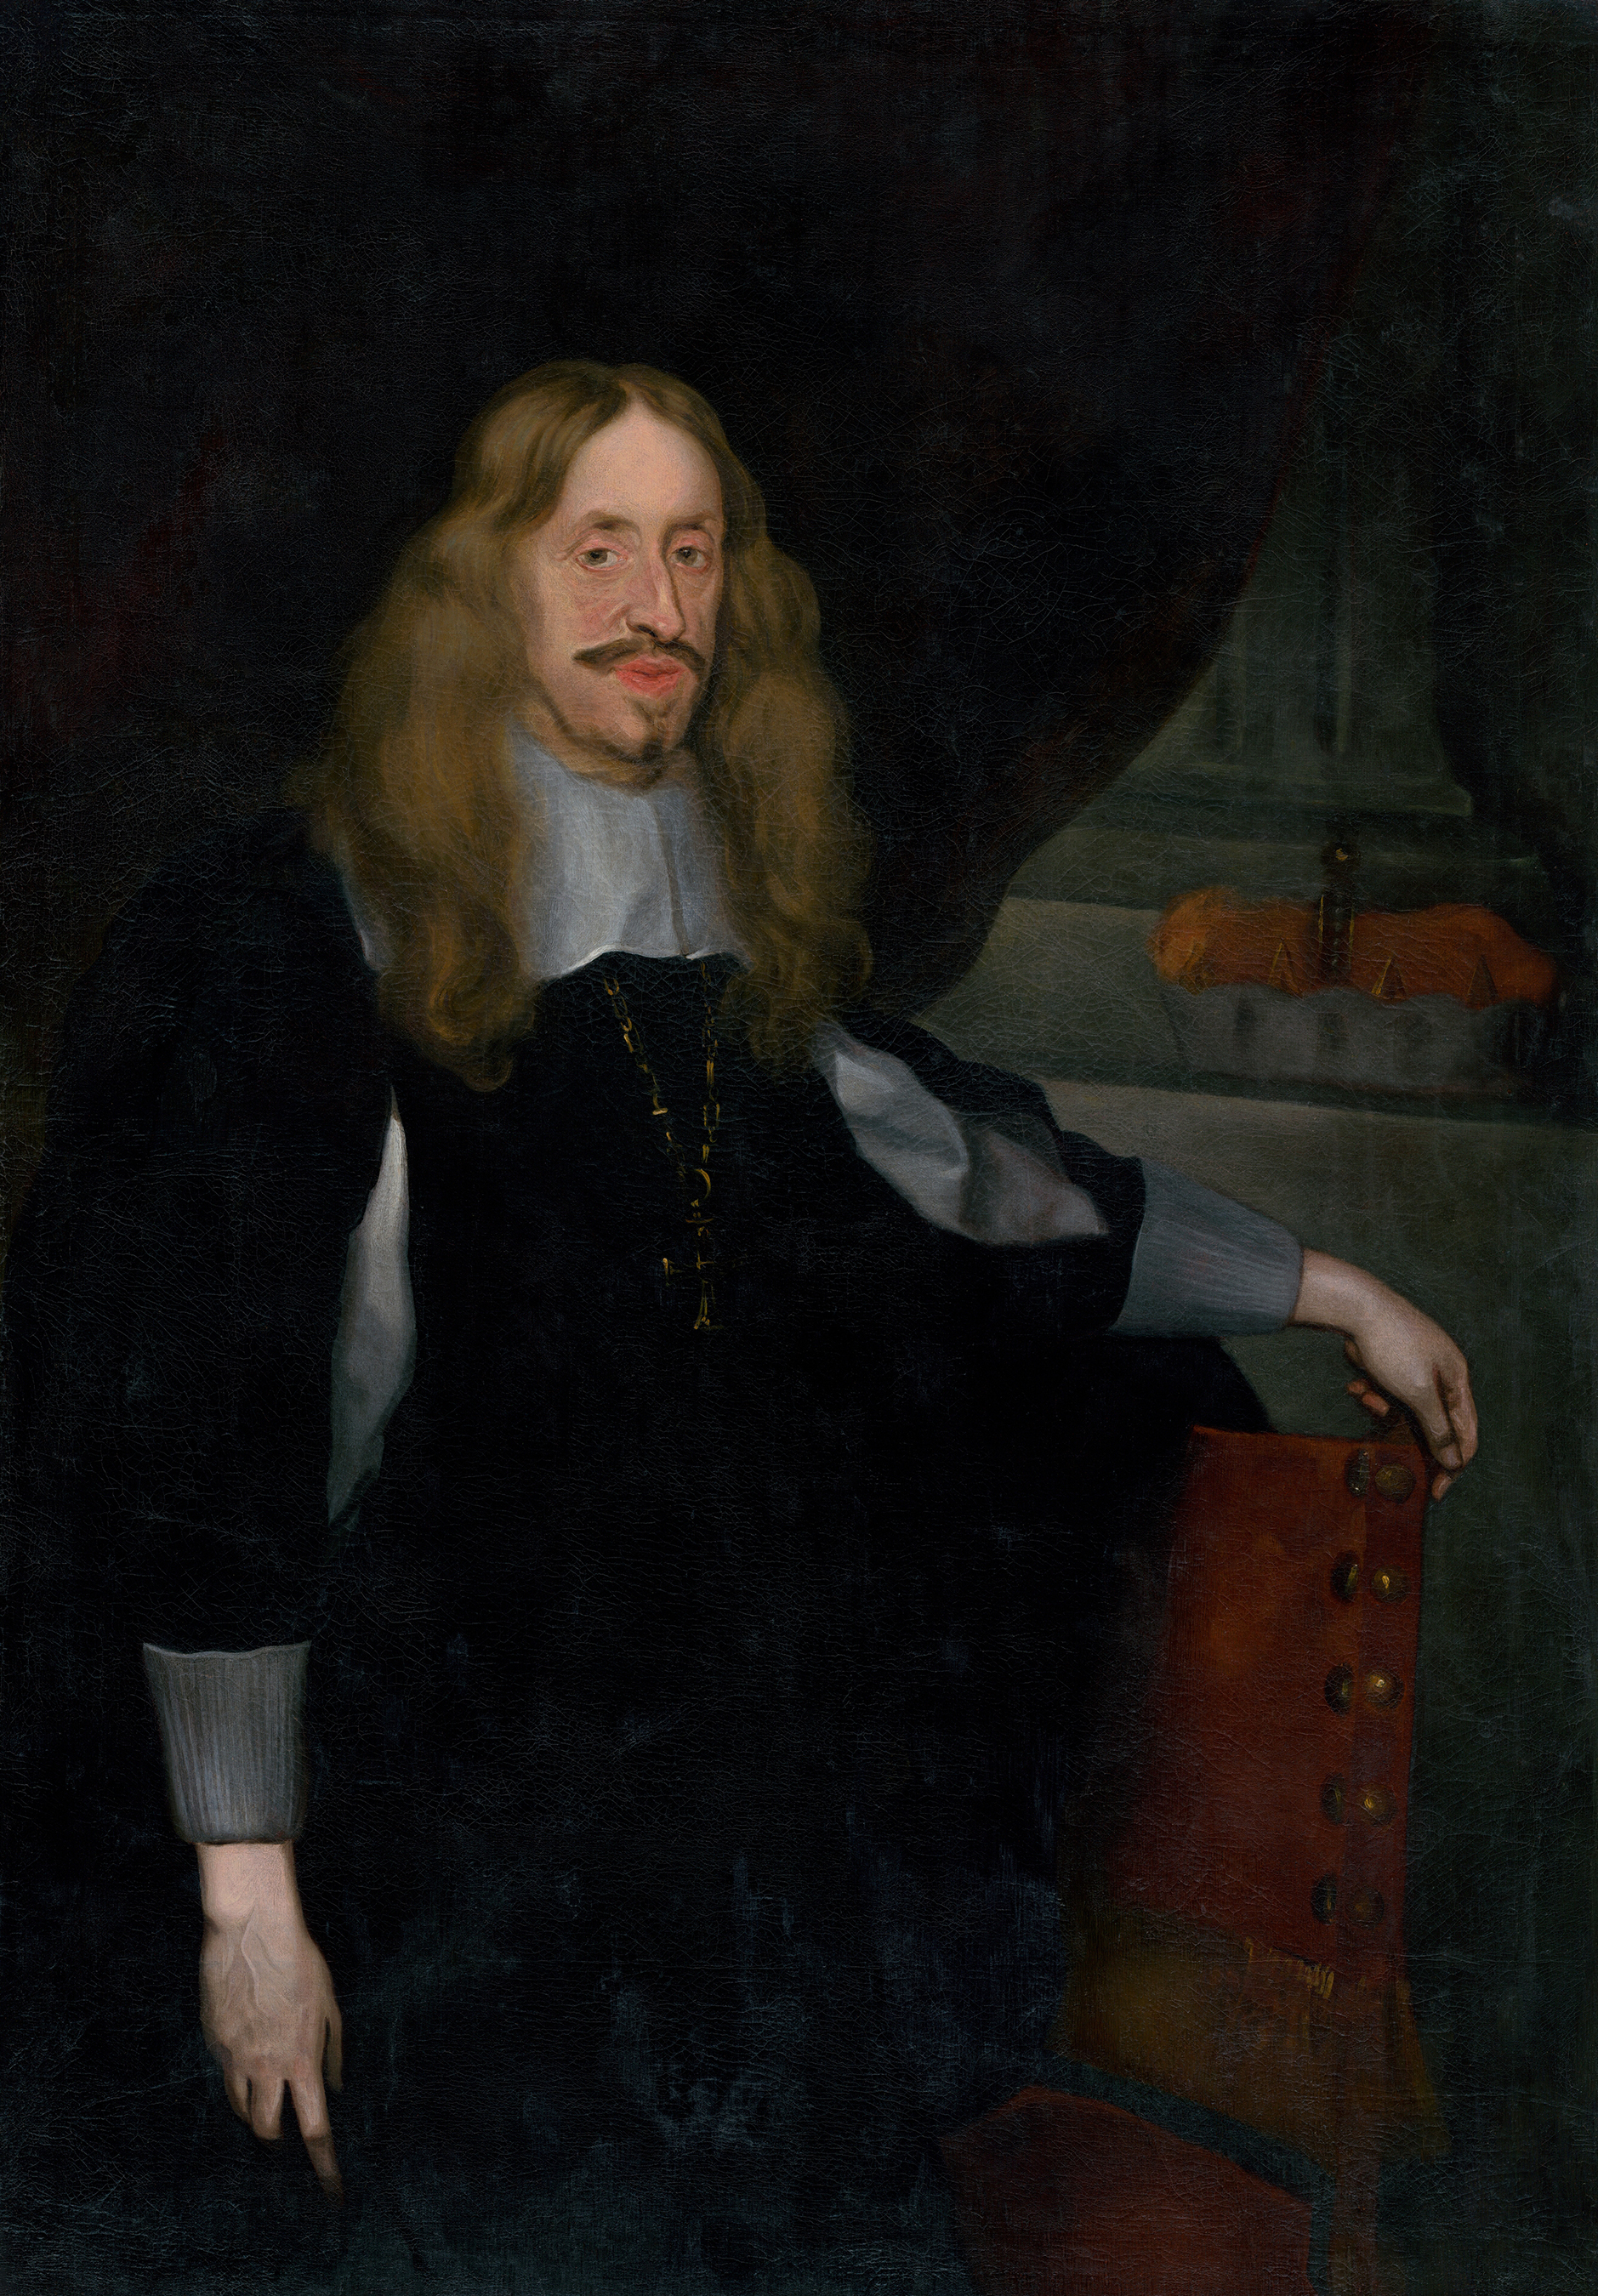 Portrait of Leopold Wilhelm of Austria (1614-1662), Archduke; Governor of the Spanish Netherlands (1647-1656), Reichsgeneralfeldmarschall (1639), Grand Master of the Teutonic Order (1641), Prince-Bishop of Halberstadt (1628-1648), Prince-Bishop of Passau (1625), Prince-Bishop of Strasbourg (1628), Prince-Bishop of Olmütz (1637), 1650 | Portraits of Kings